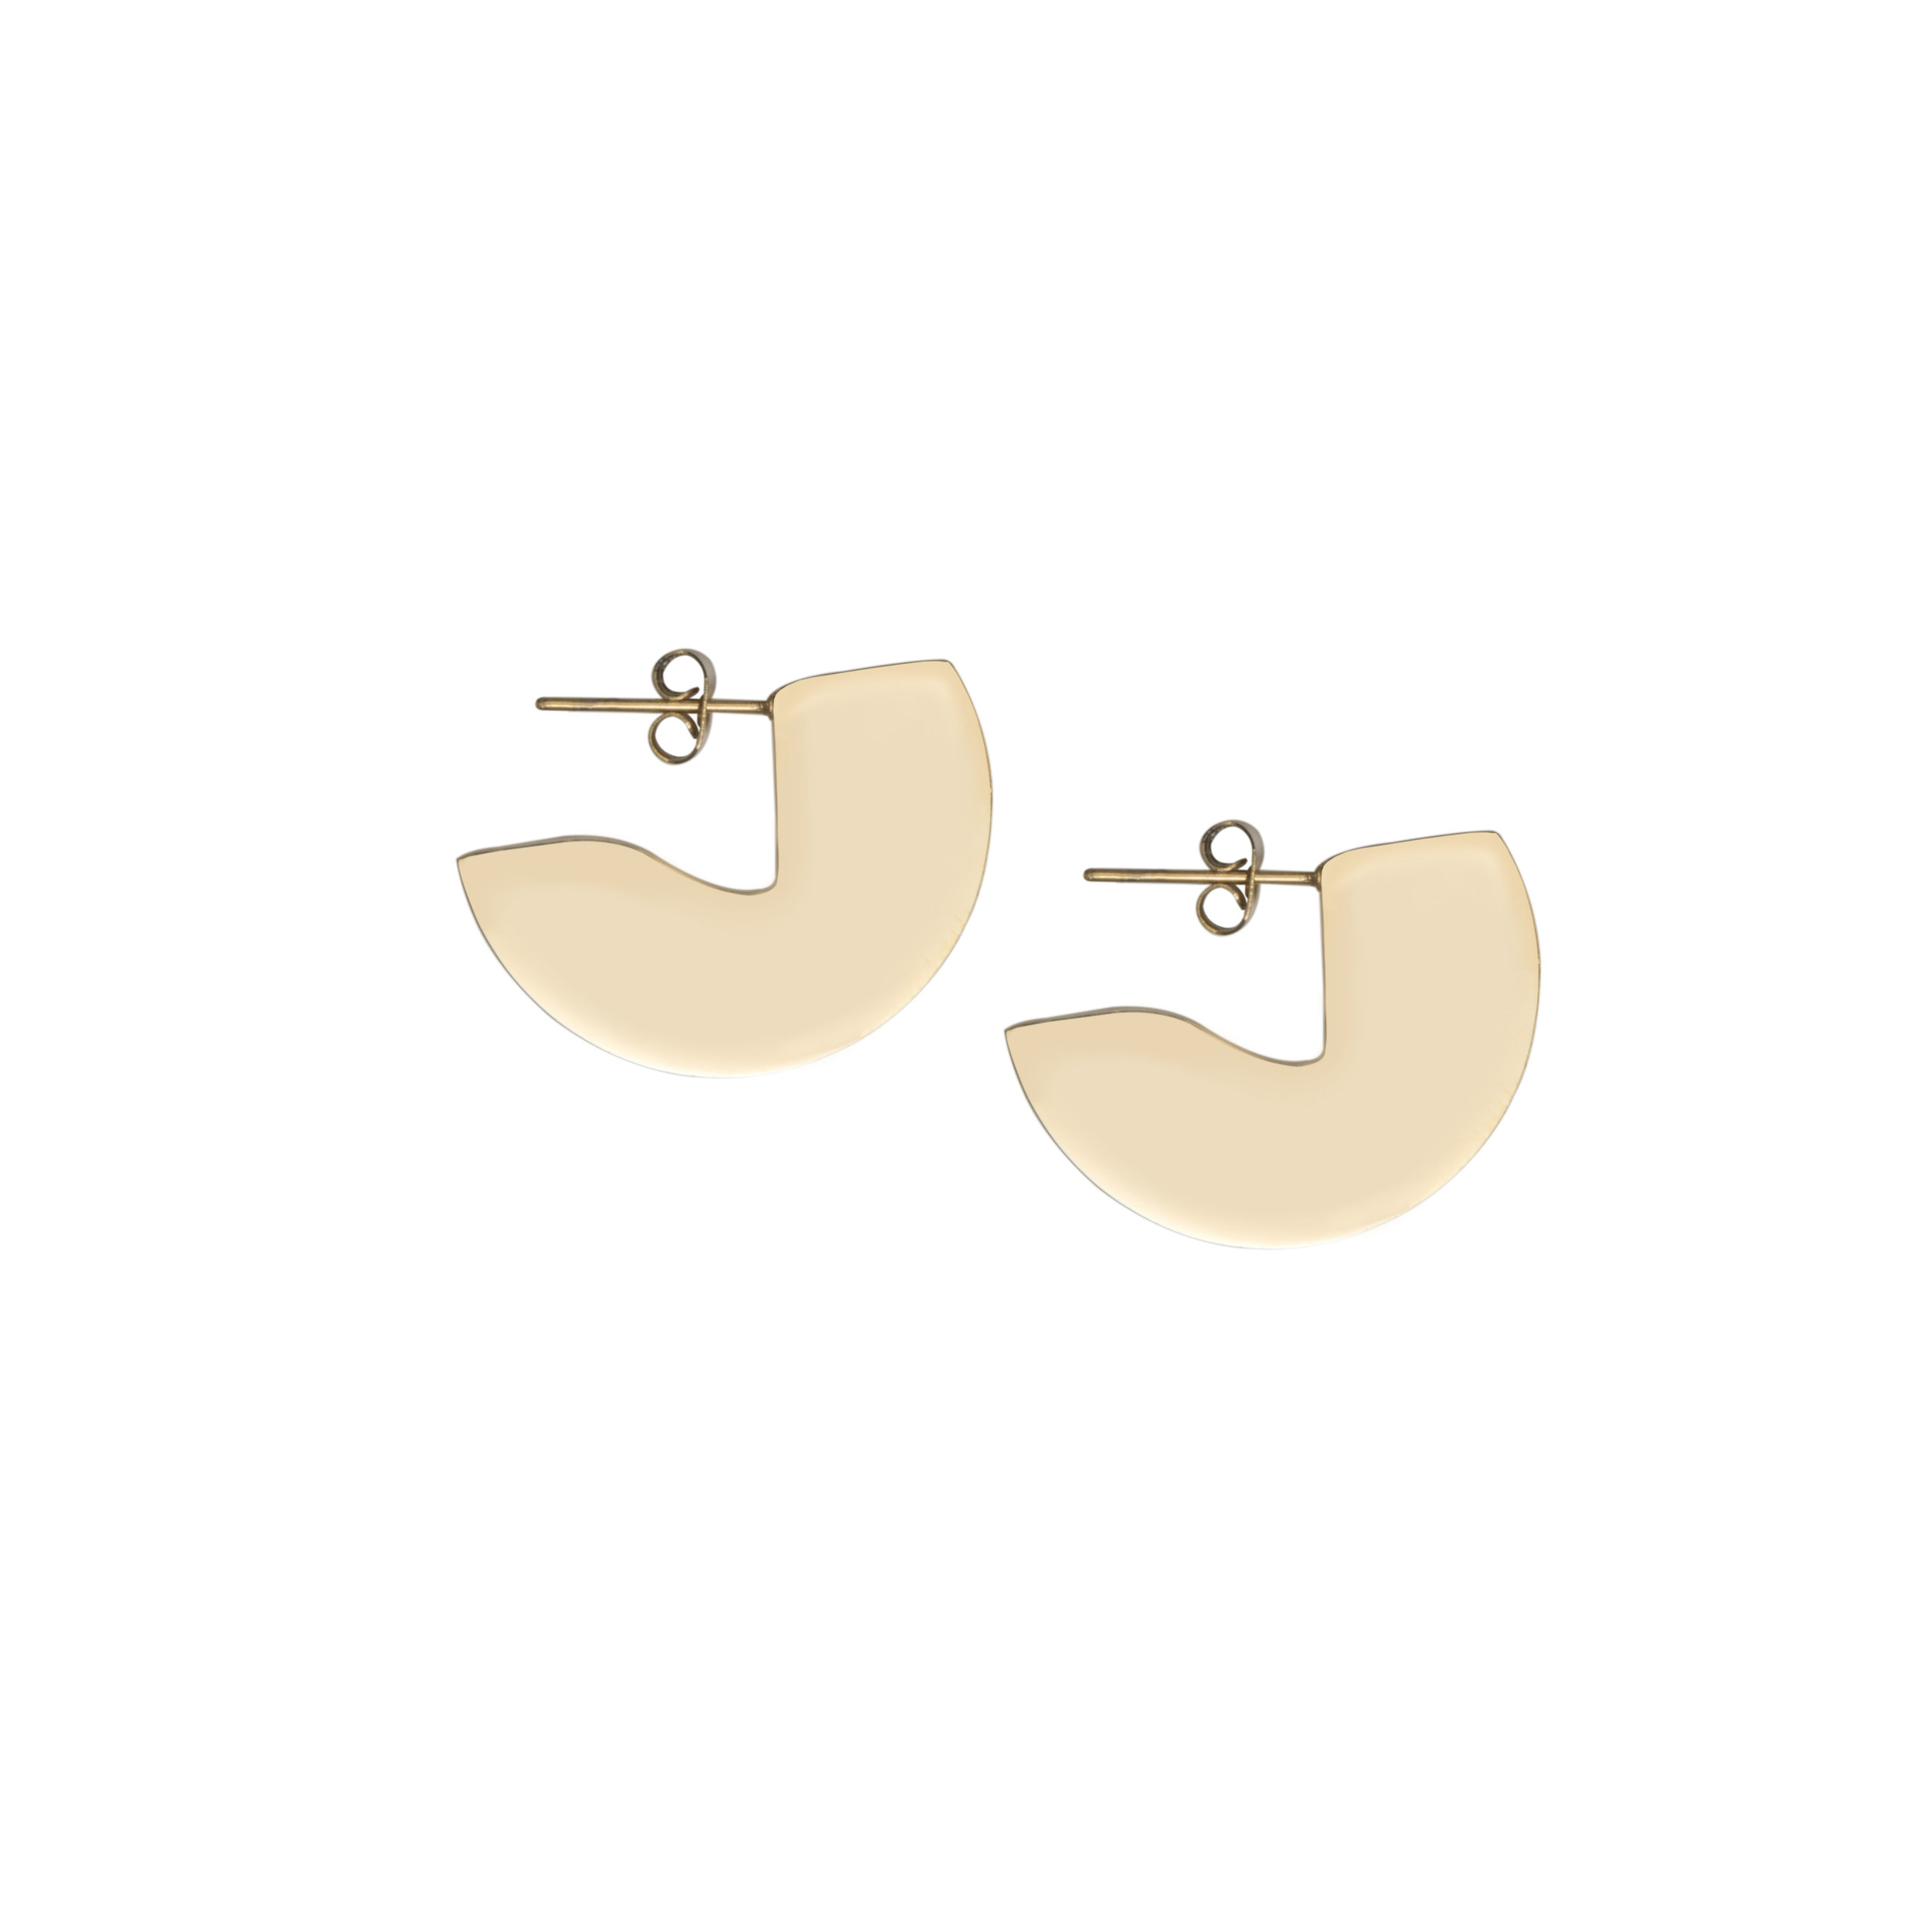 A Weathered Penny Gold Curved Earrings, £20